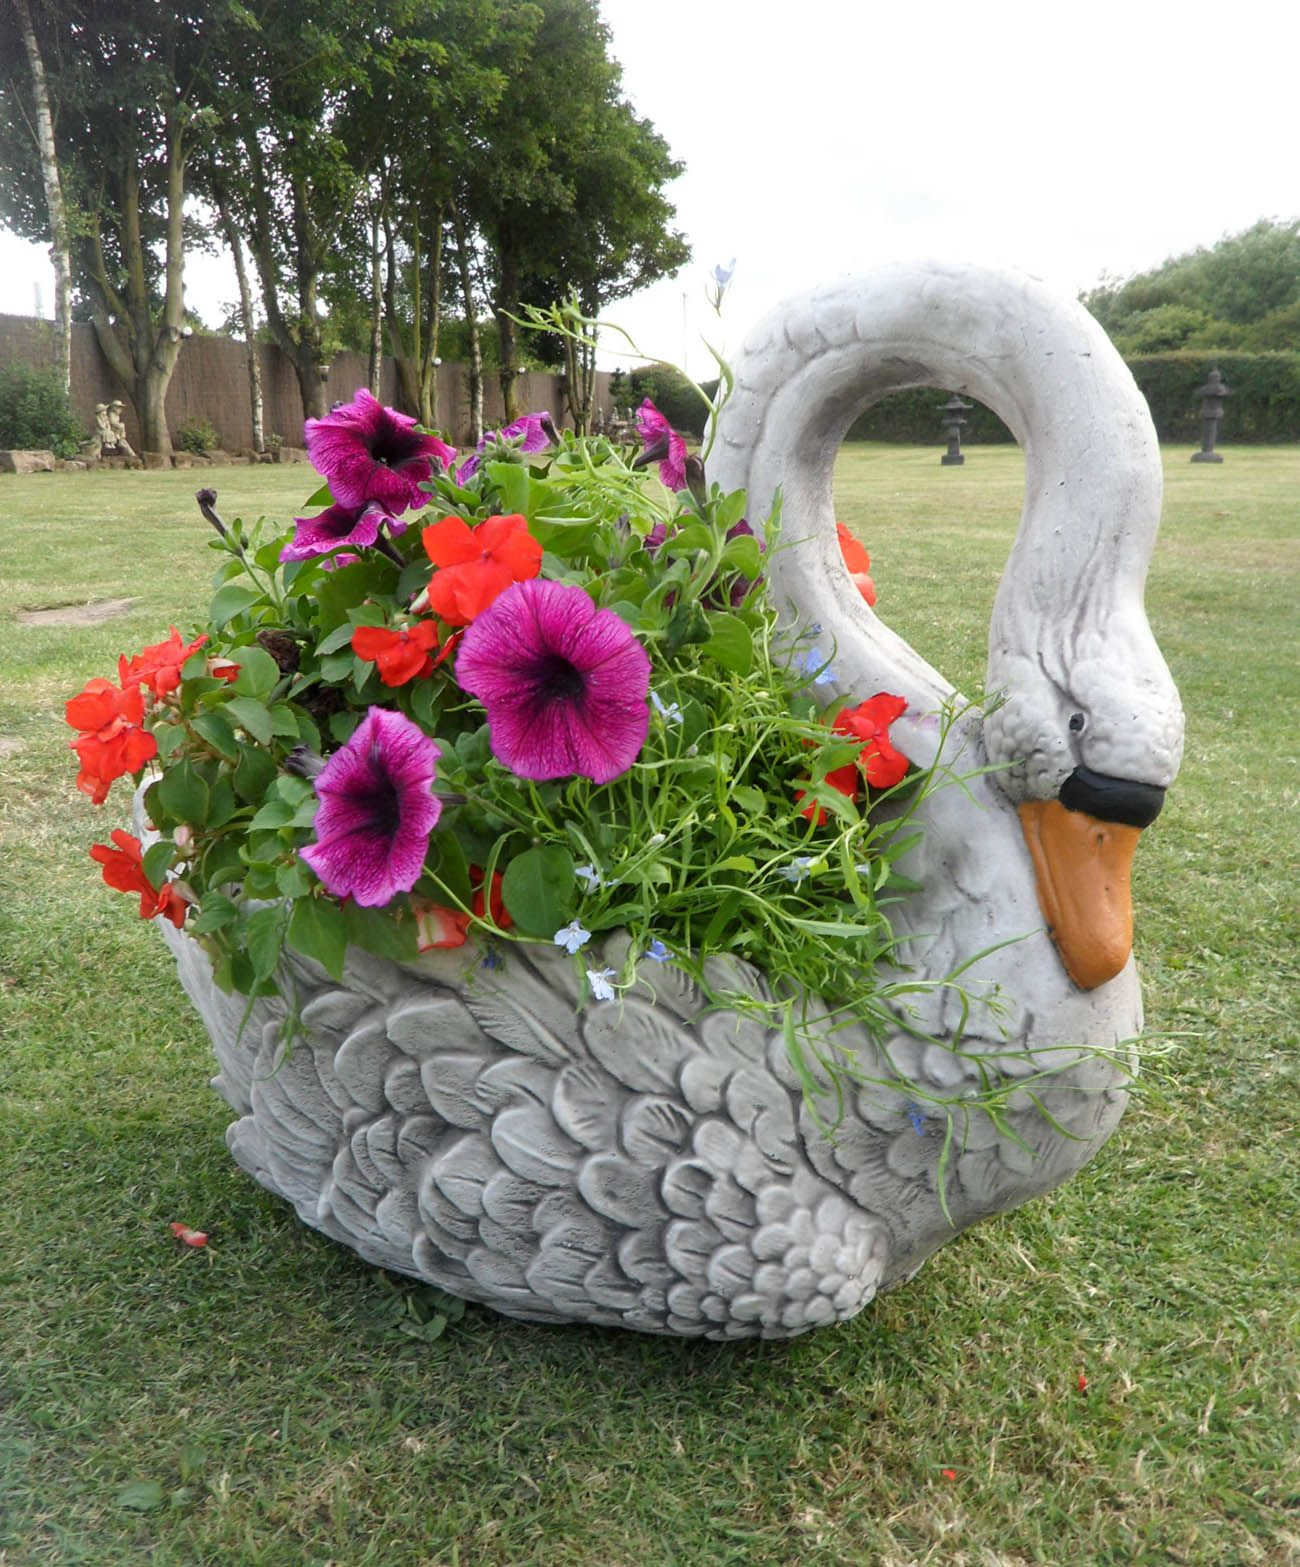 18 Decorative Garden Ornament Examples | Garden ornaments, Ornament ...